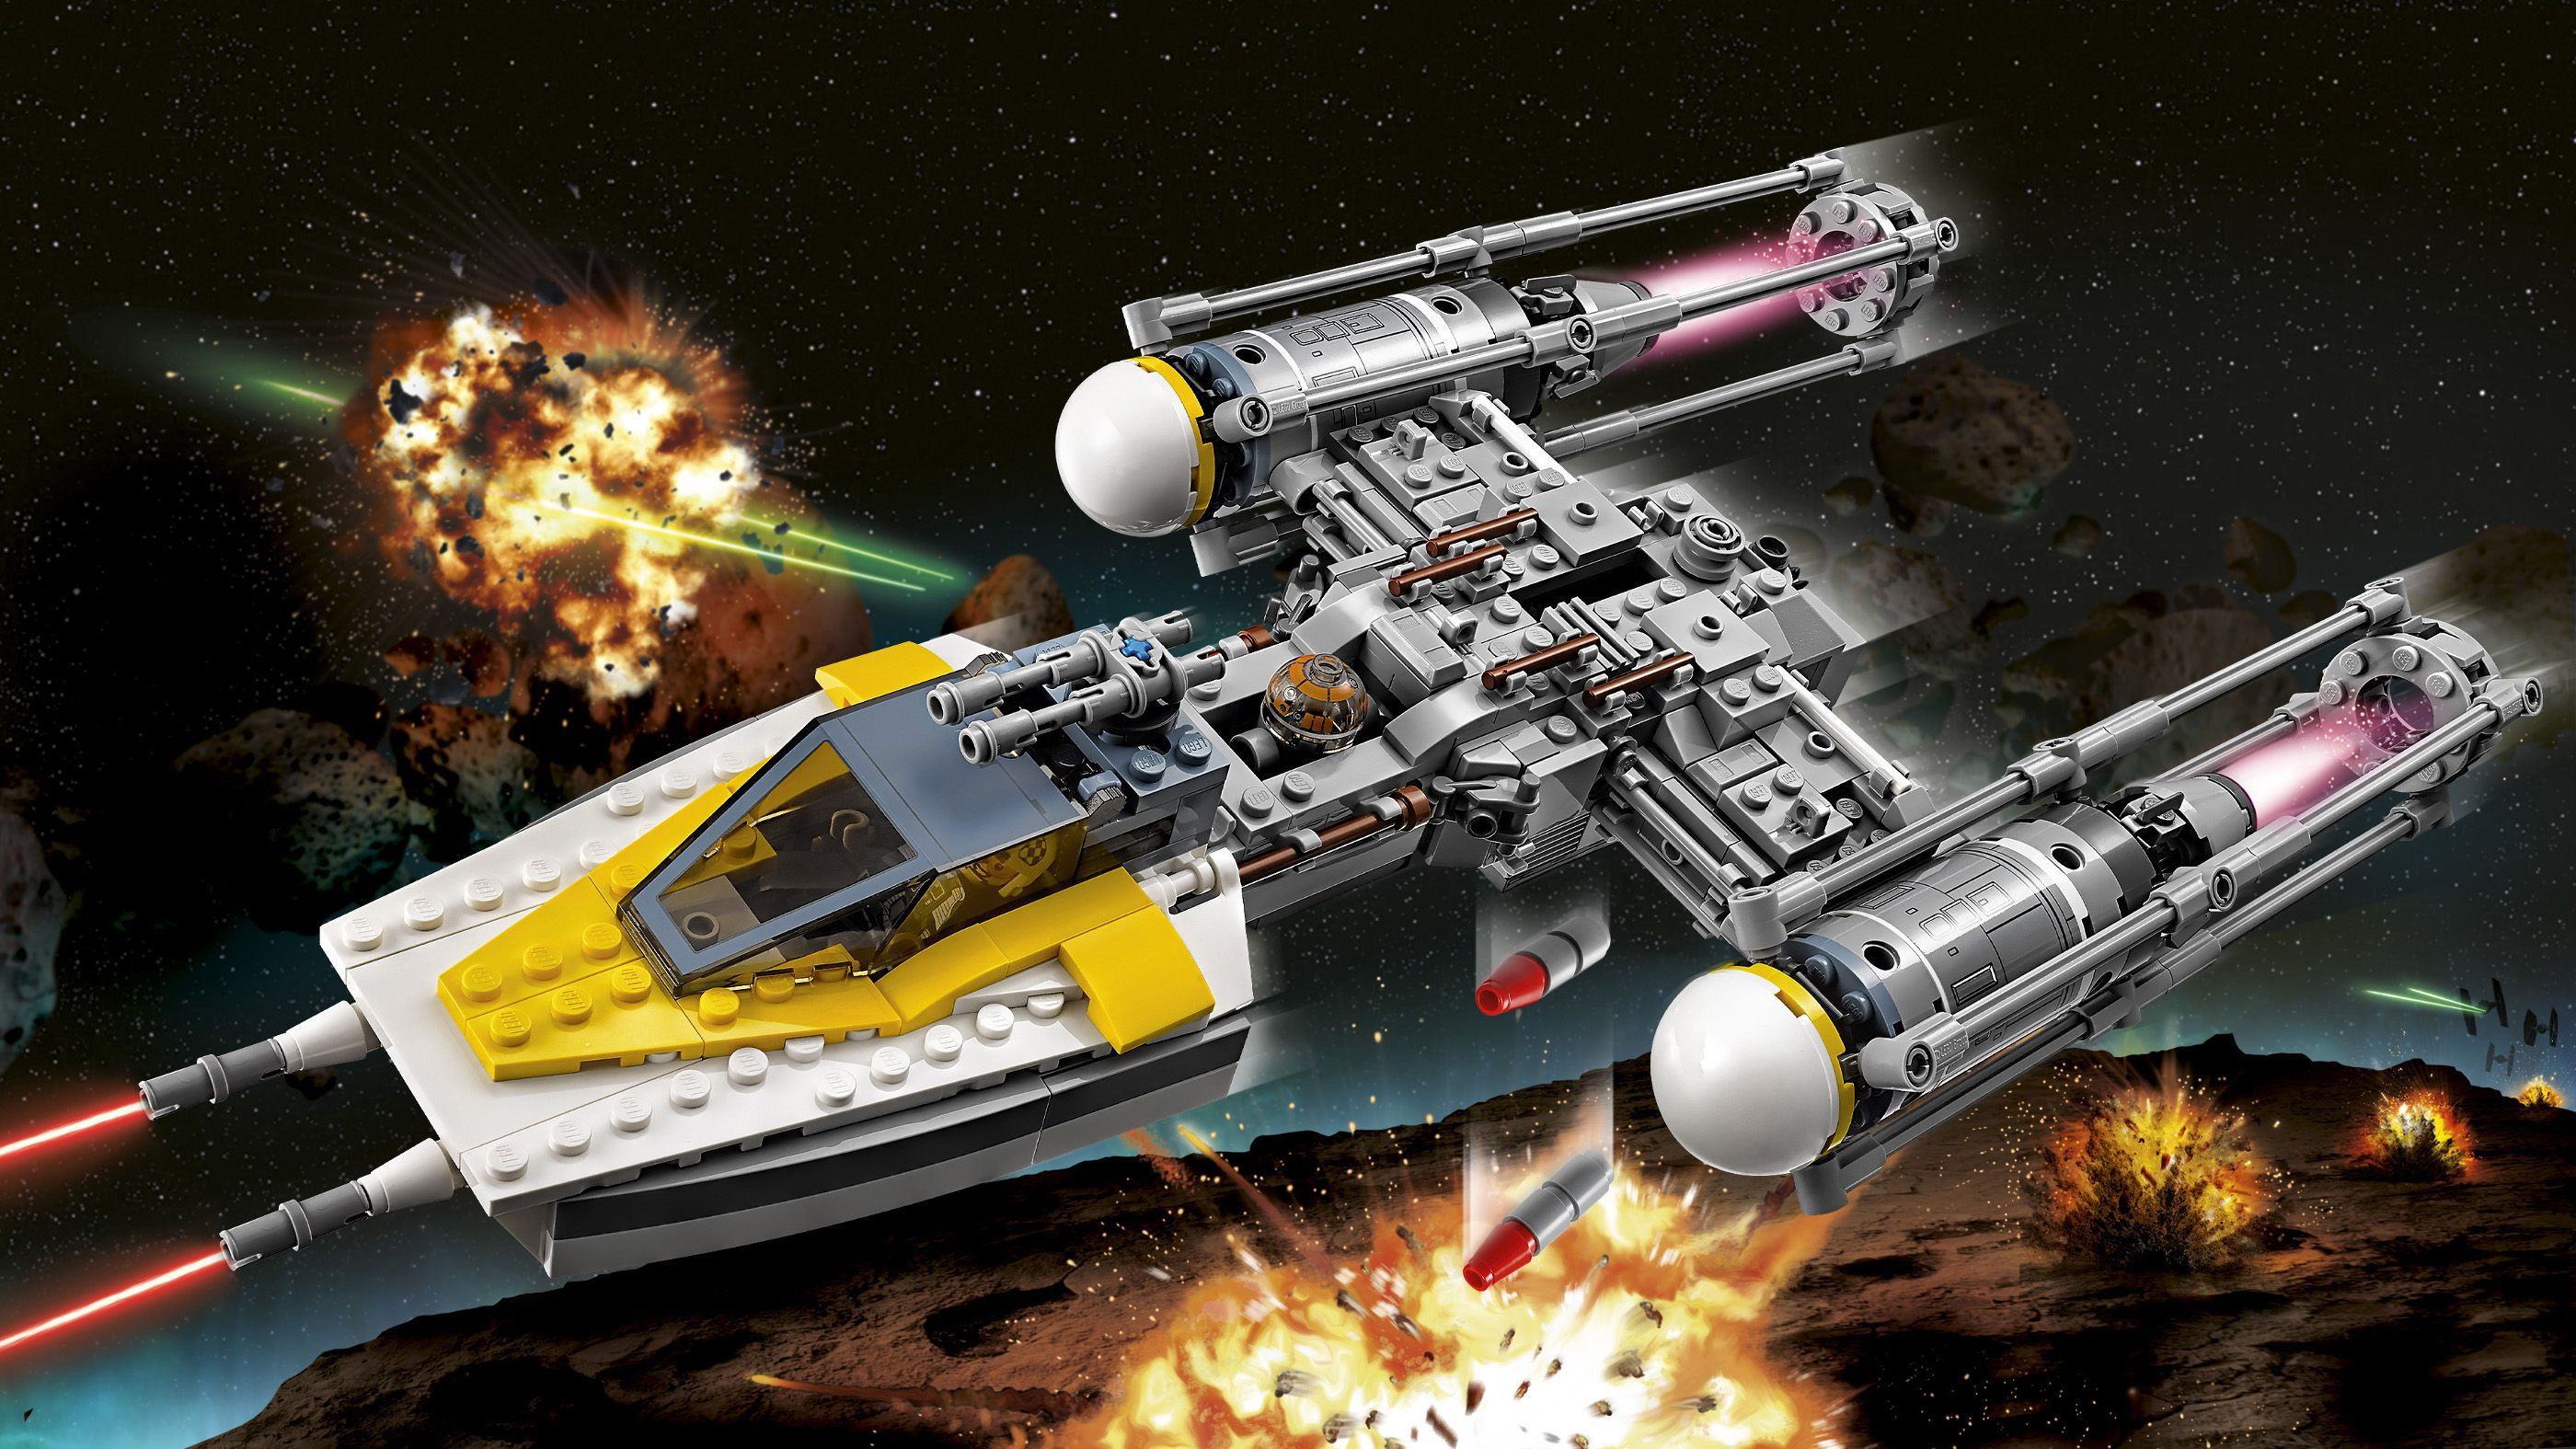 LEGO Star Wars Rogue One Y-Wing Starfighter